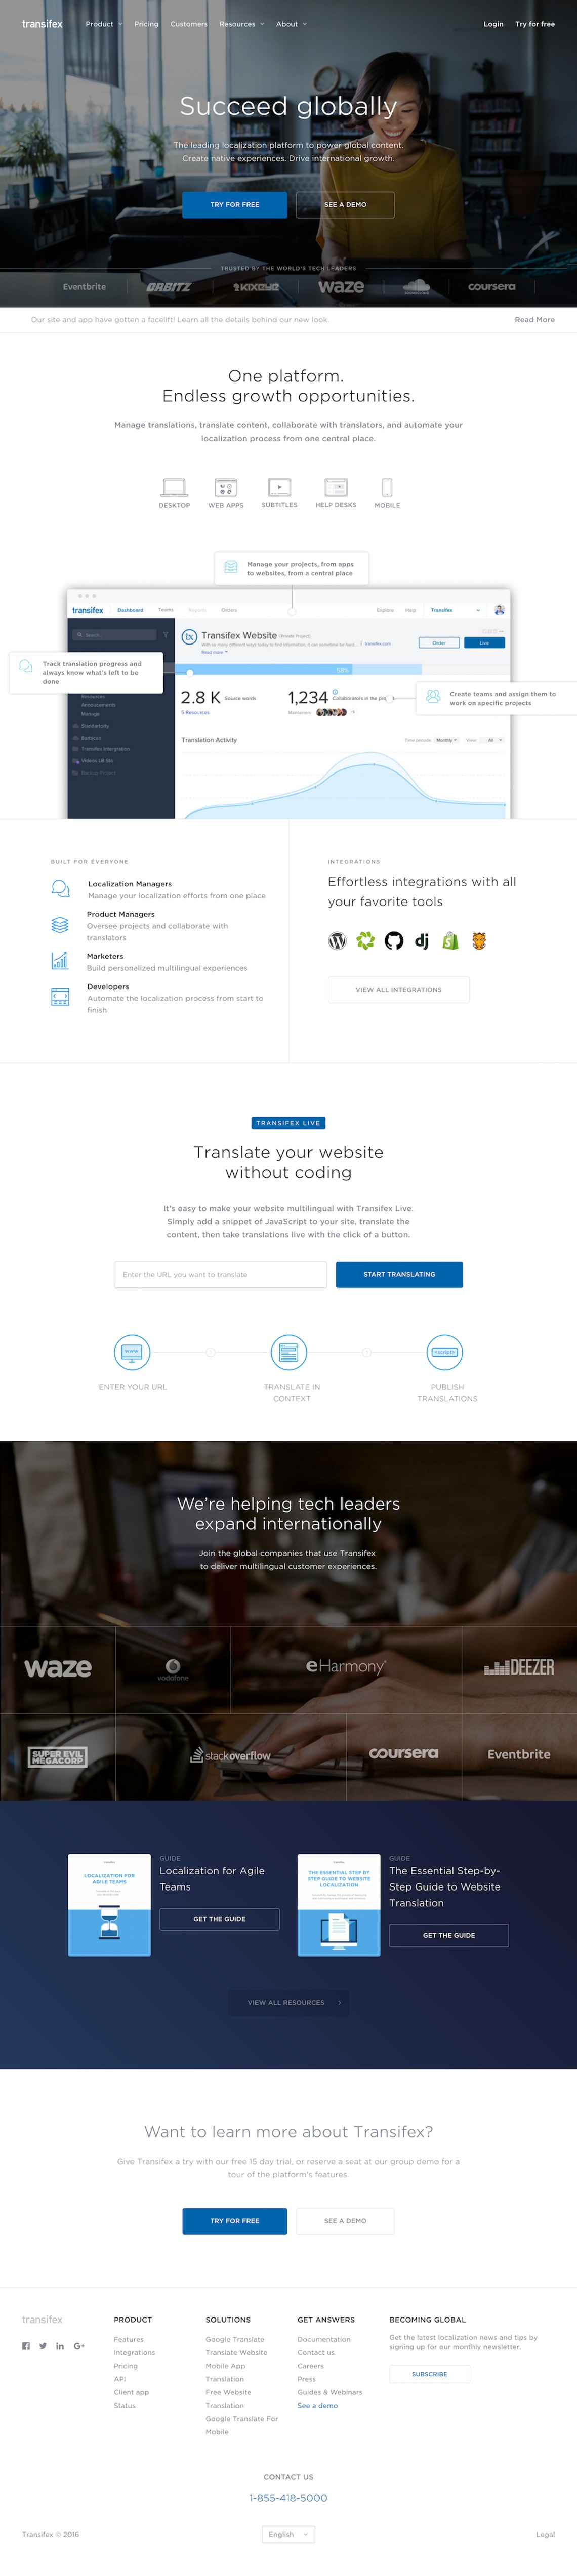 Transifex - Localization Platform for Translating Web Apps, Mobile Apps, Websites | Translation Tool and Software